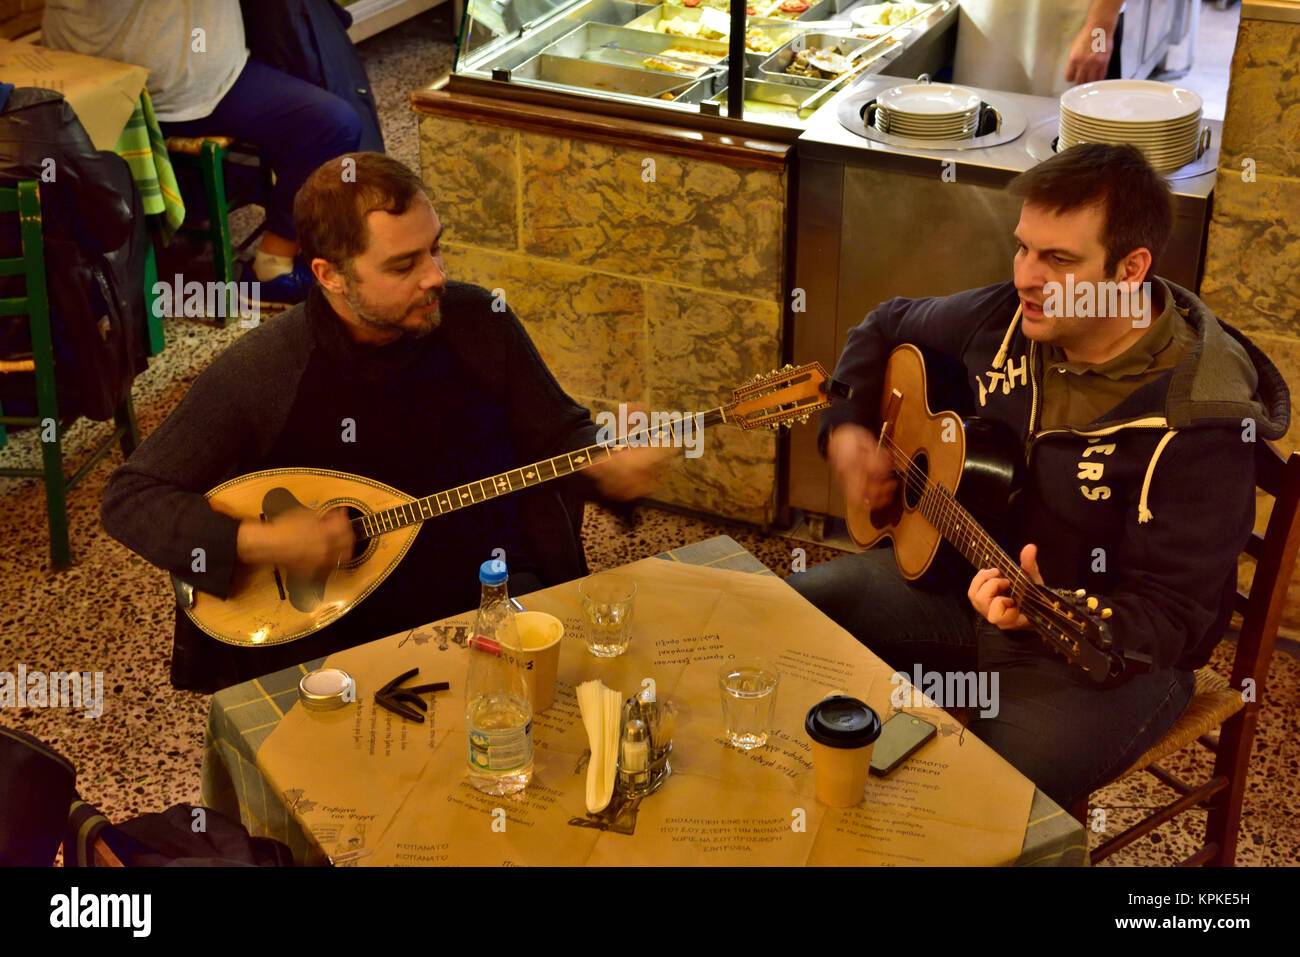 Two musicians busking inside restaurant one with traditional Greek bouzouki the other with guitar - Stock Image